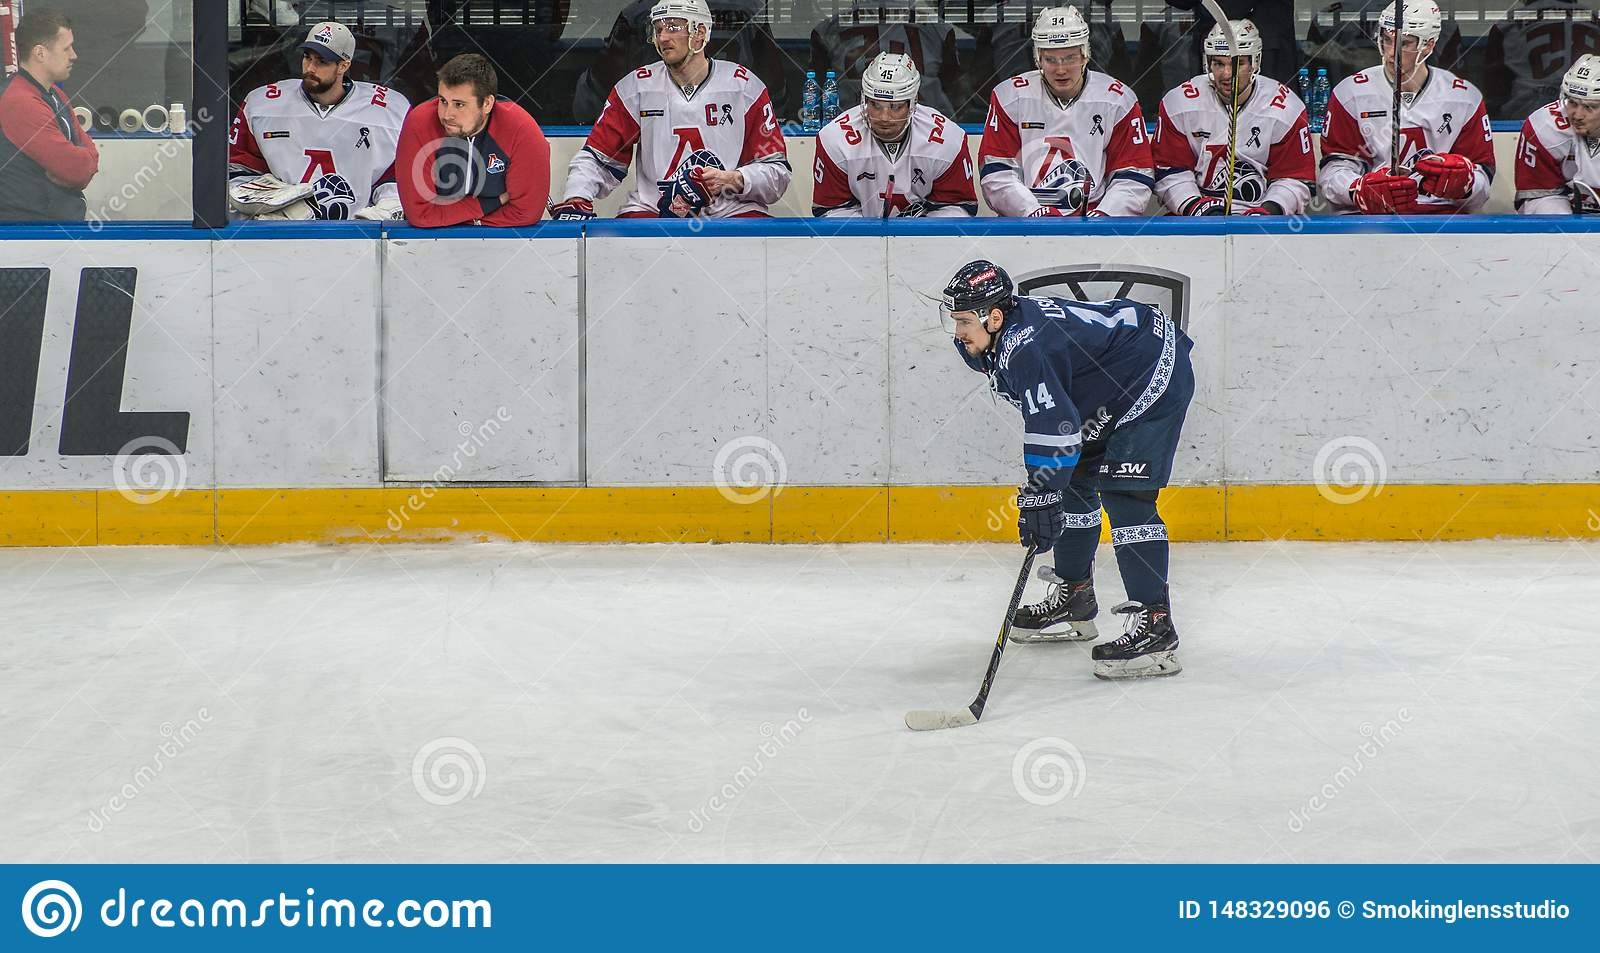 Ice hockey player in front of bench